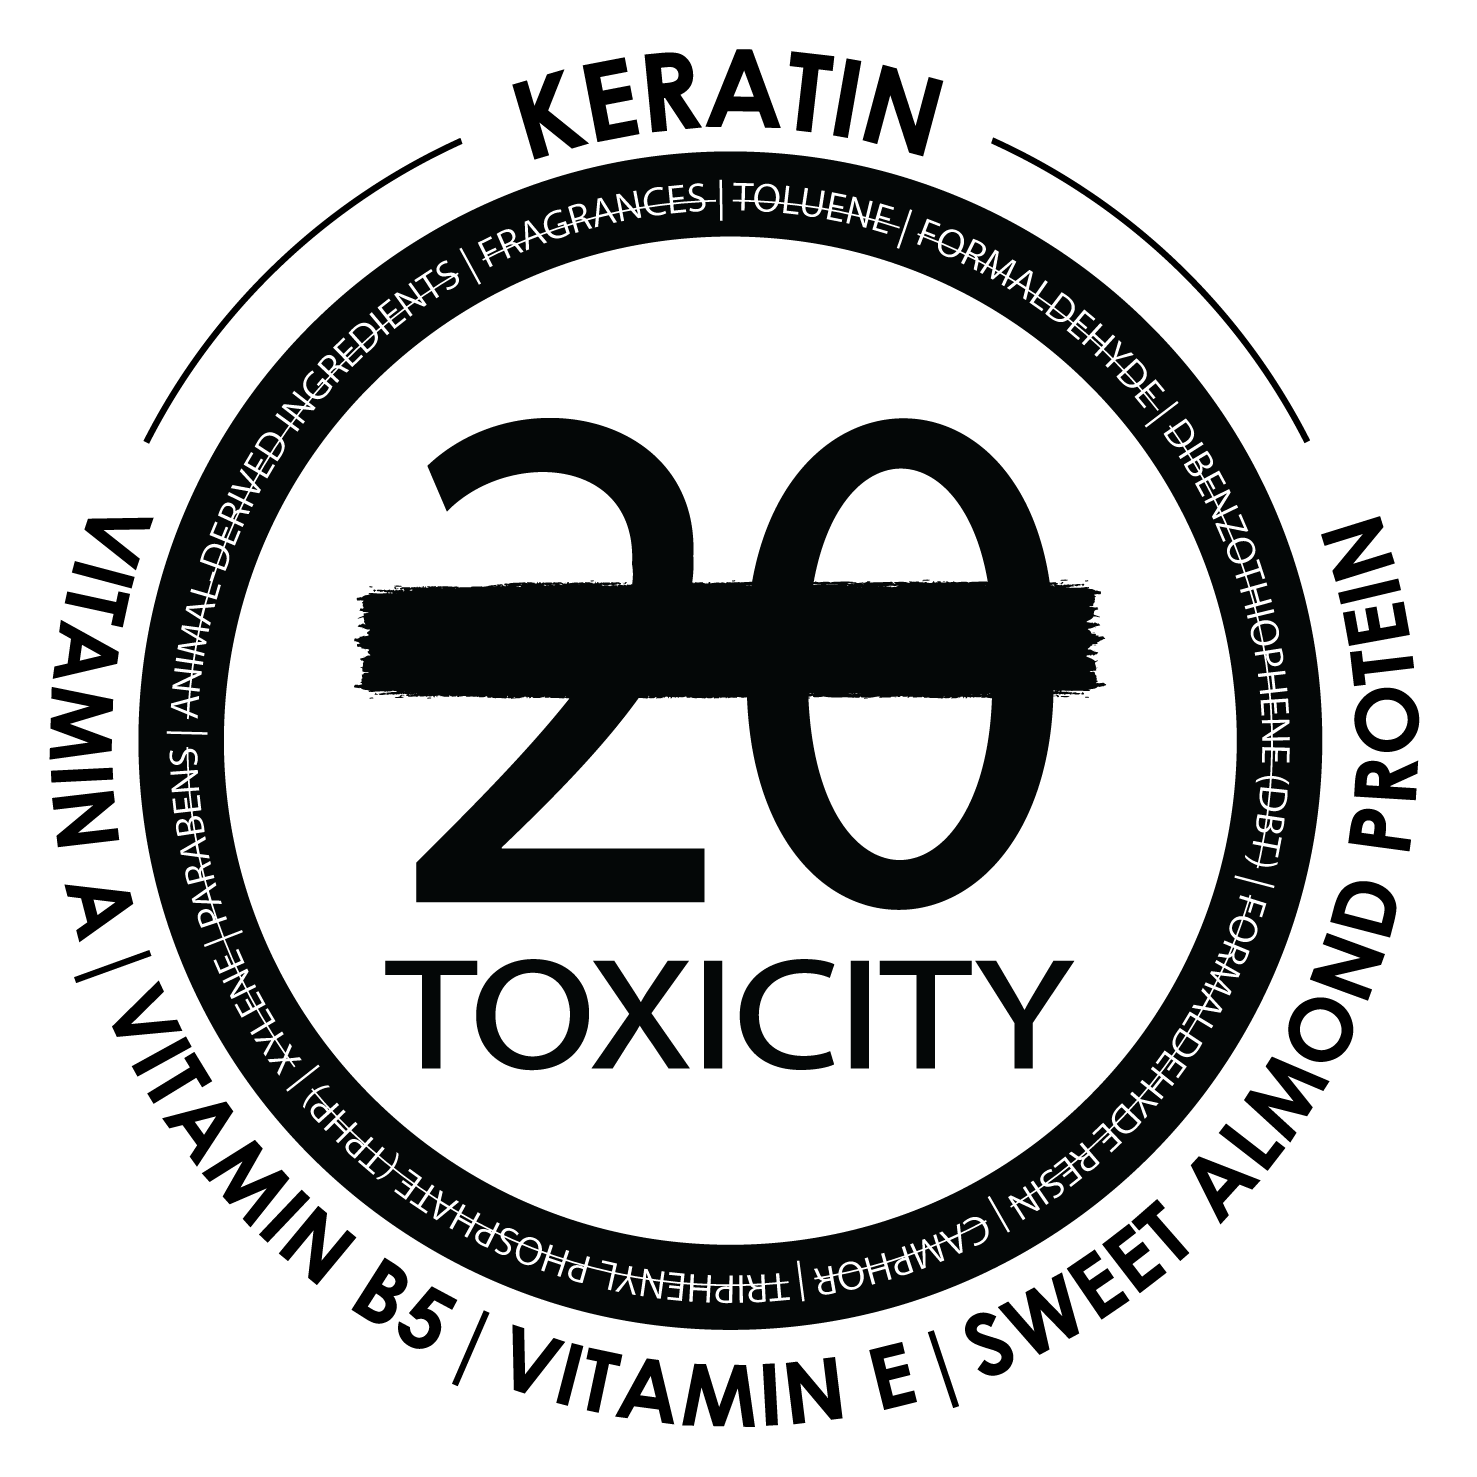 20- TOXICITY LUX PROFESSIONAL LINE